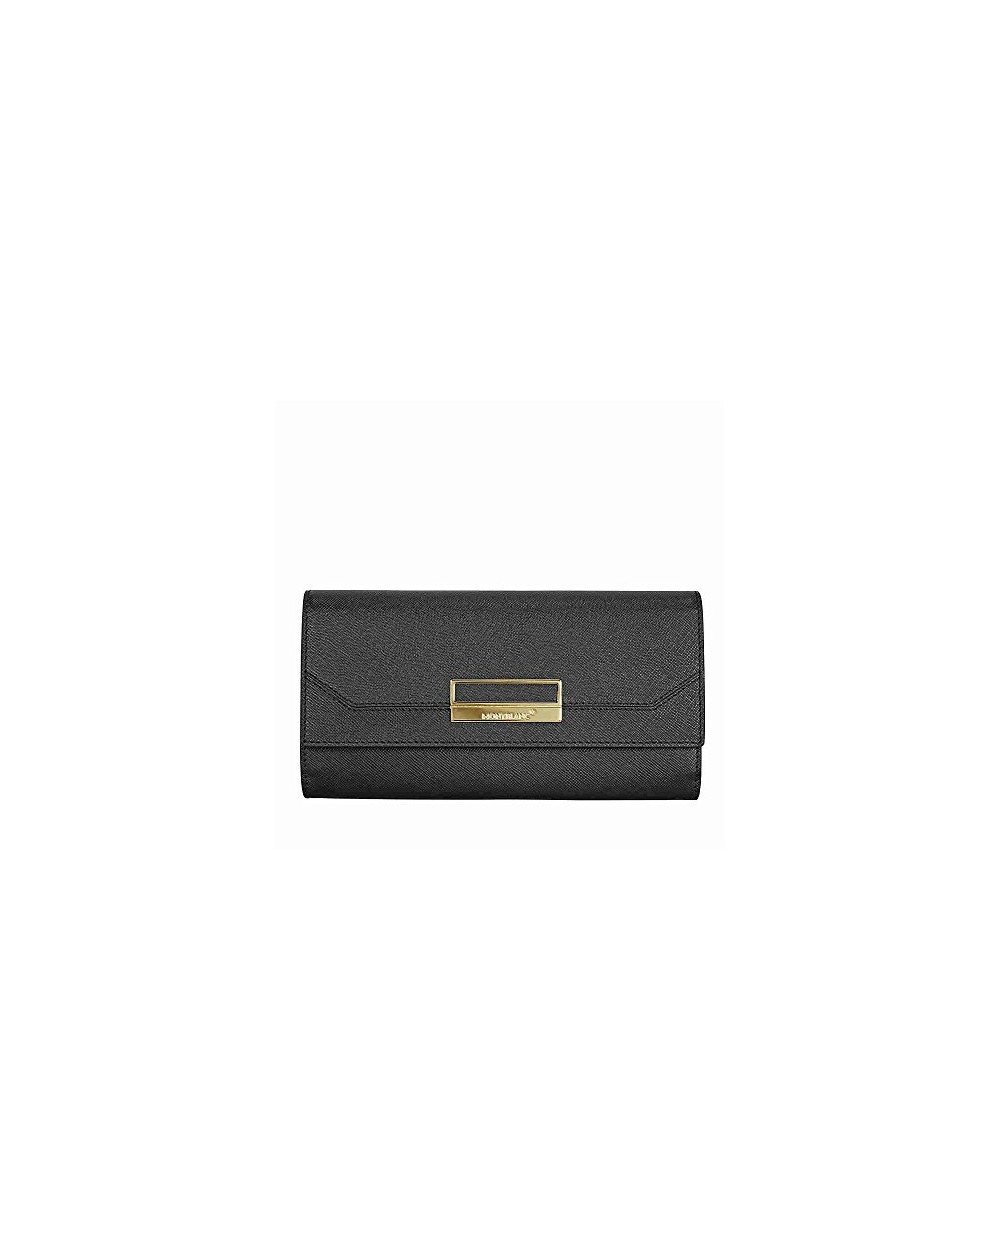 Montblanc Sartorial Long Wallet 10 cc with flap lady